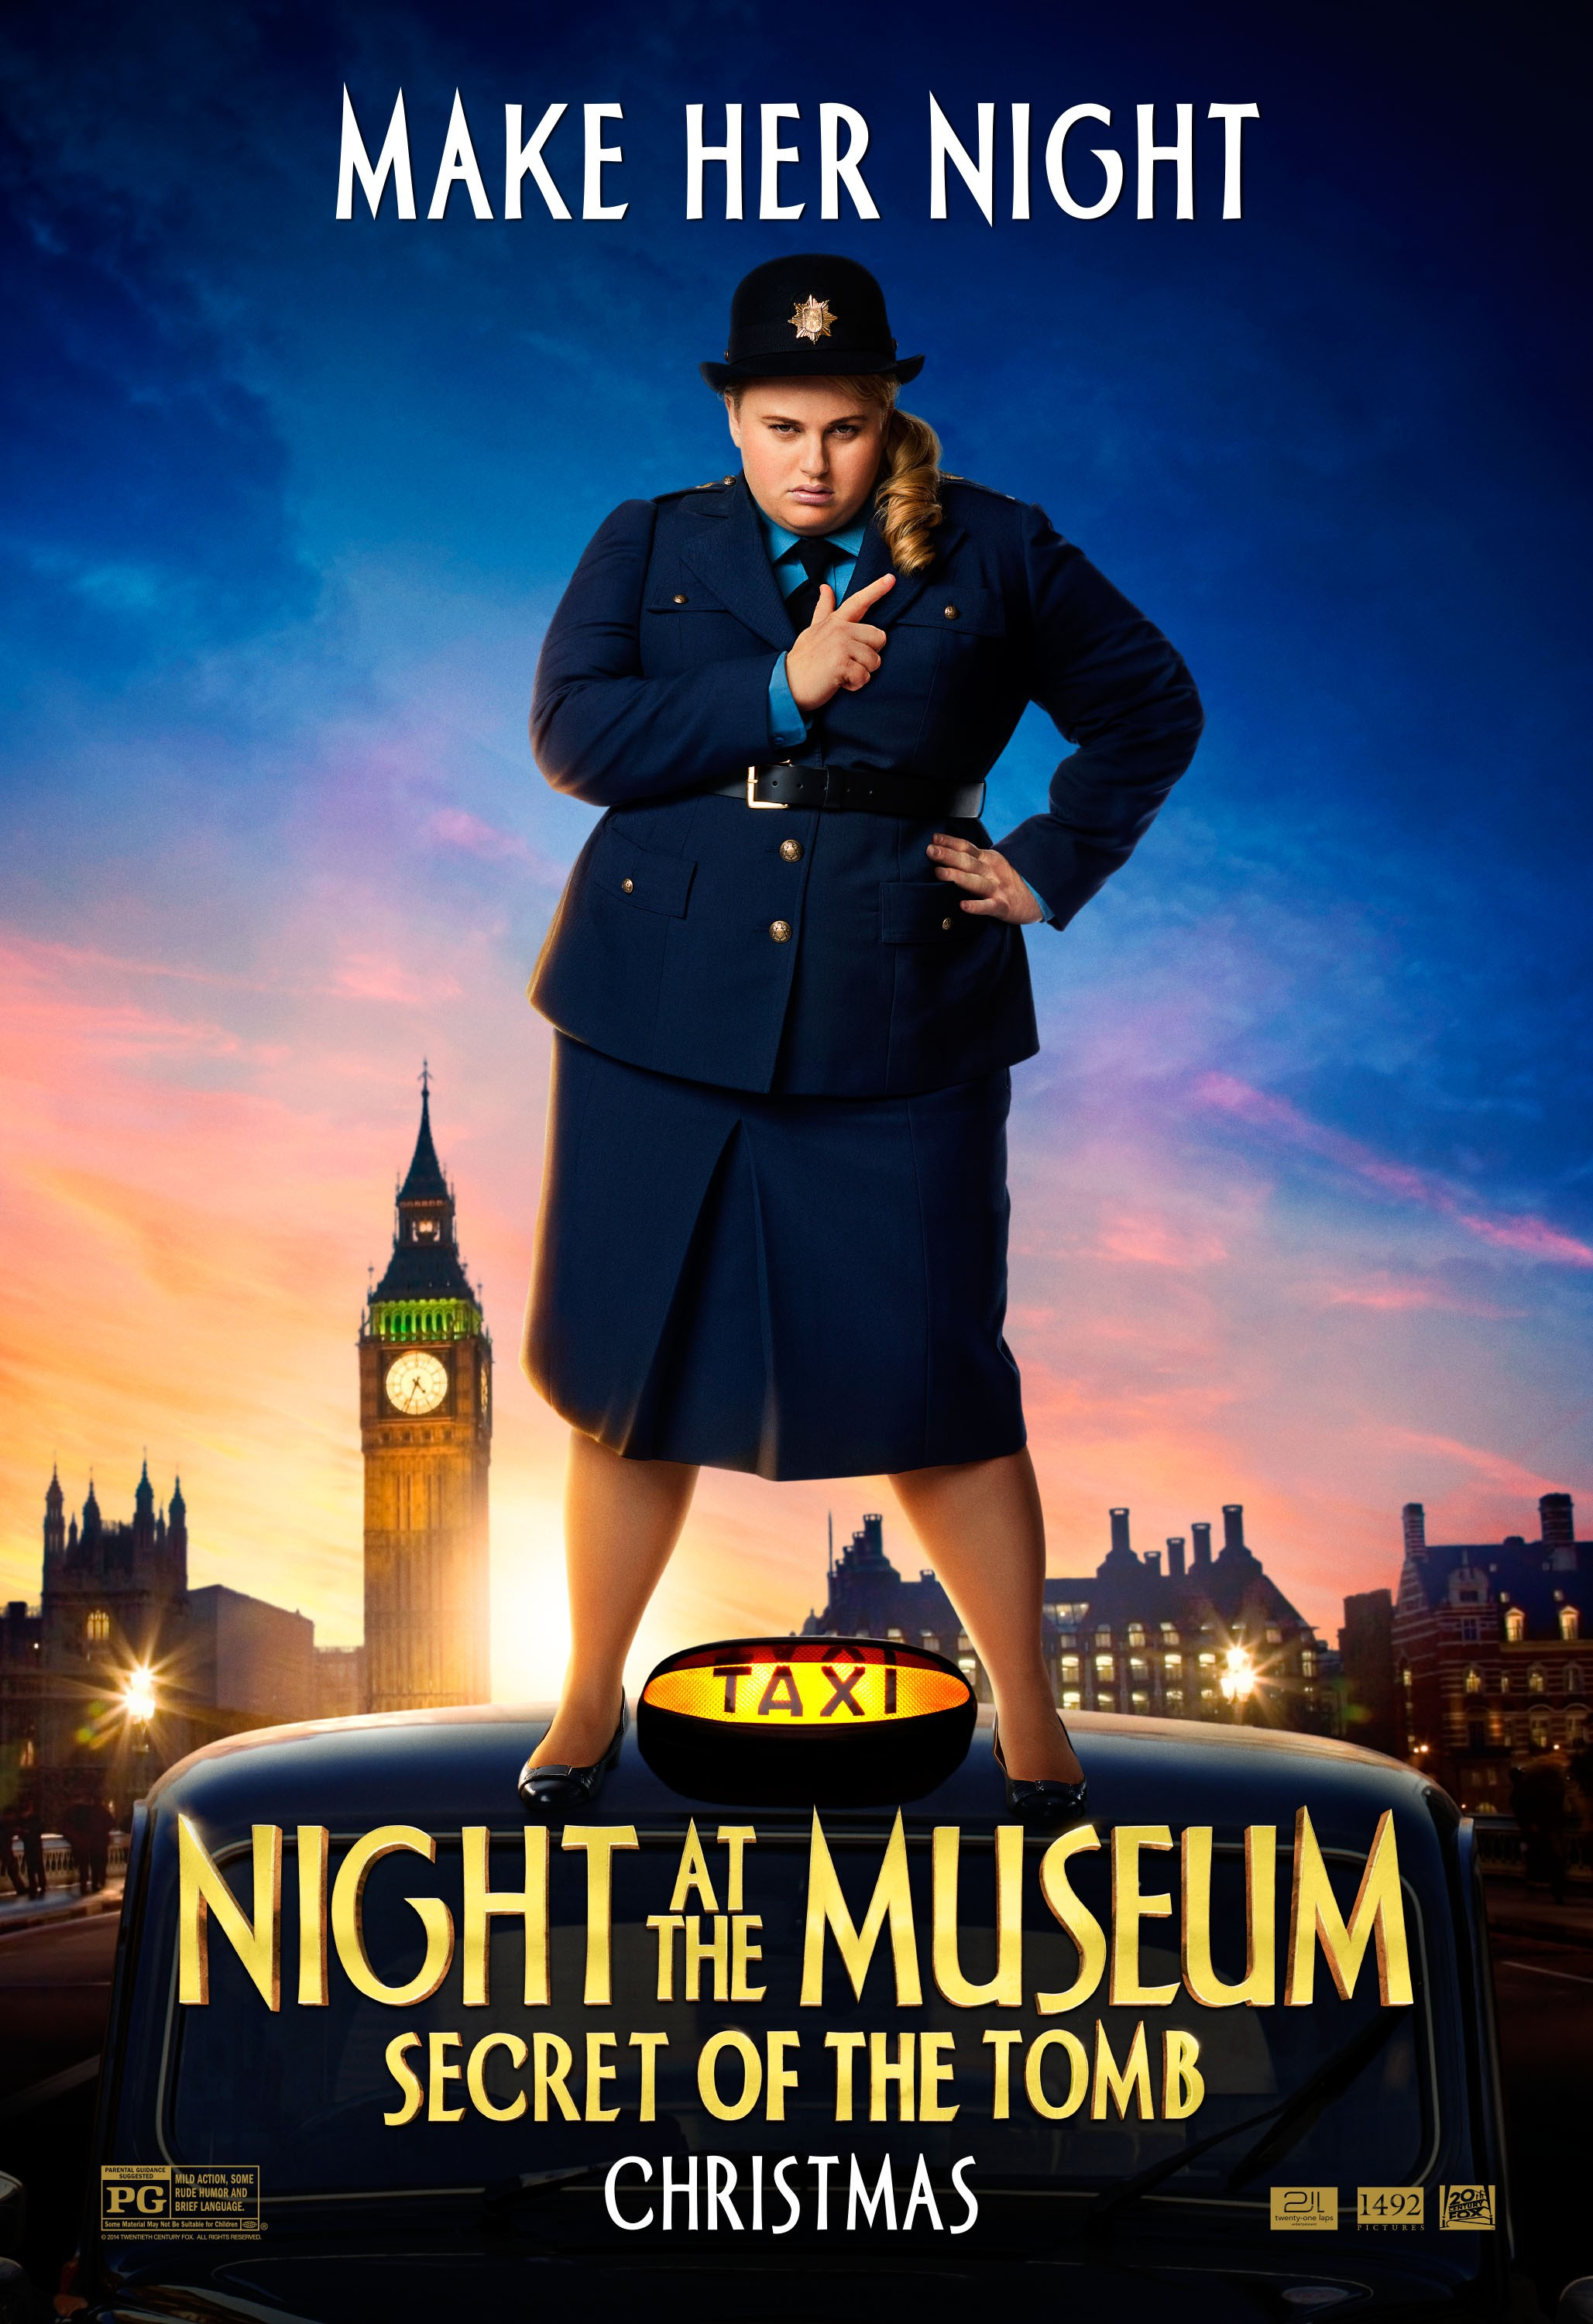 Night at the Museum Secret of the Tomb 2